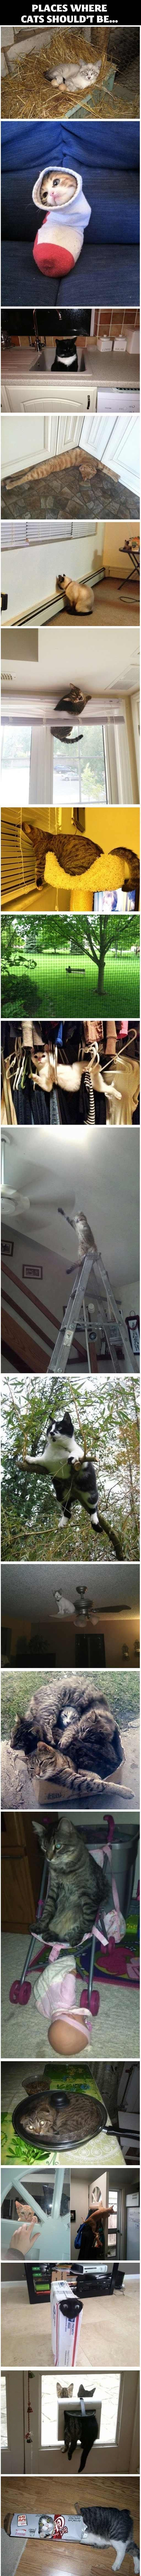 Funny cats: Places where cats shouldn't be LOL, DAMN!                                                                                                                                                                                 More